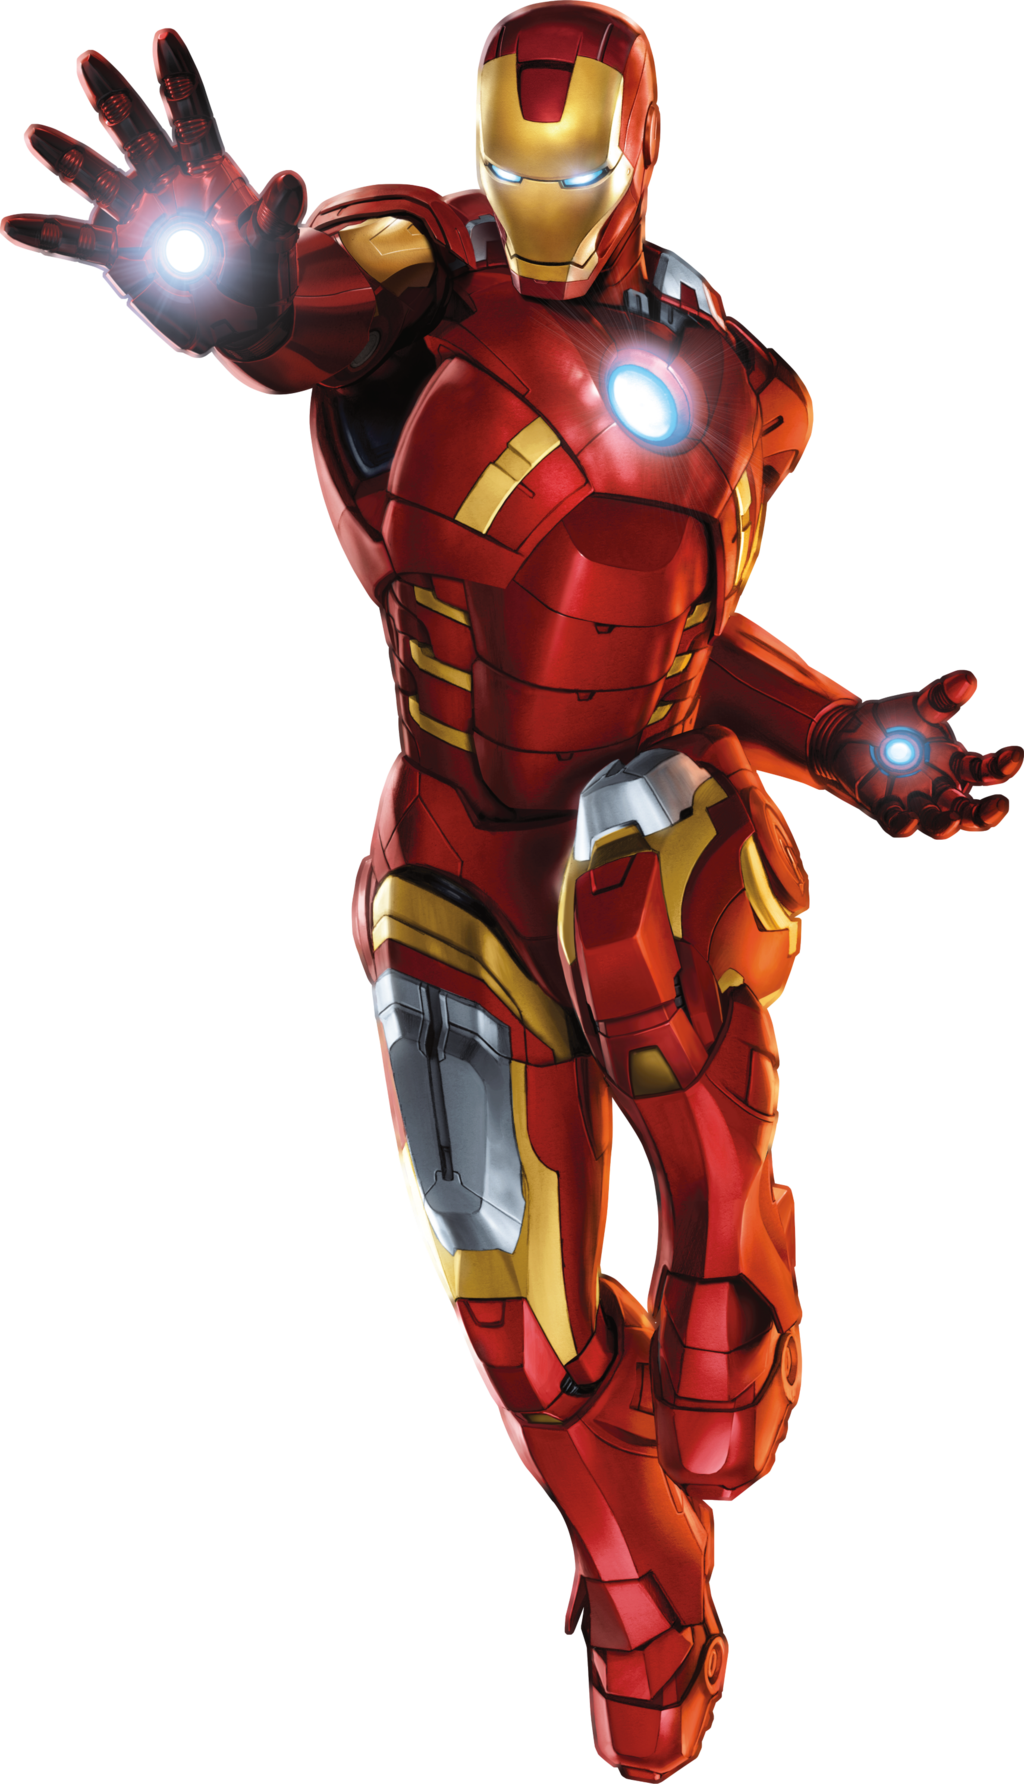 svg free download Iron man free panda. Avengers clipart action figure.